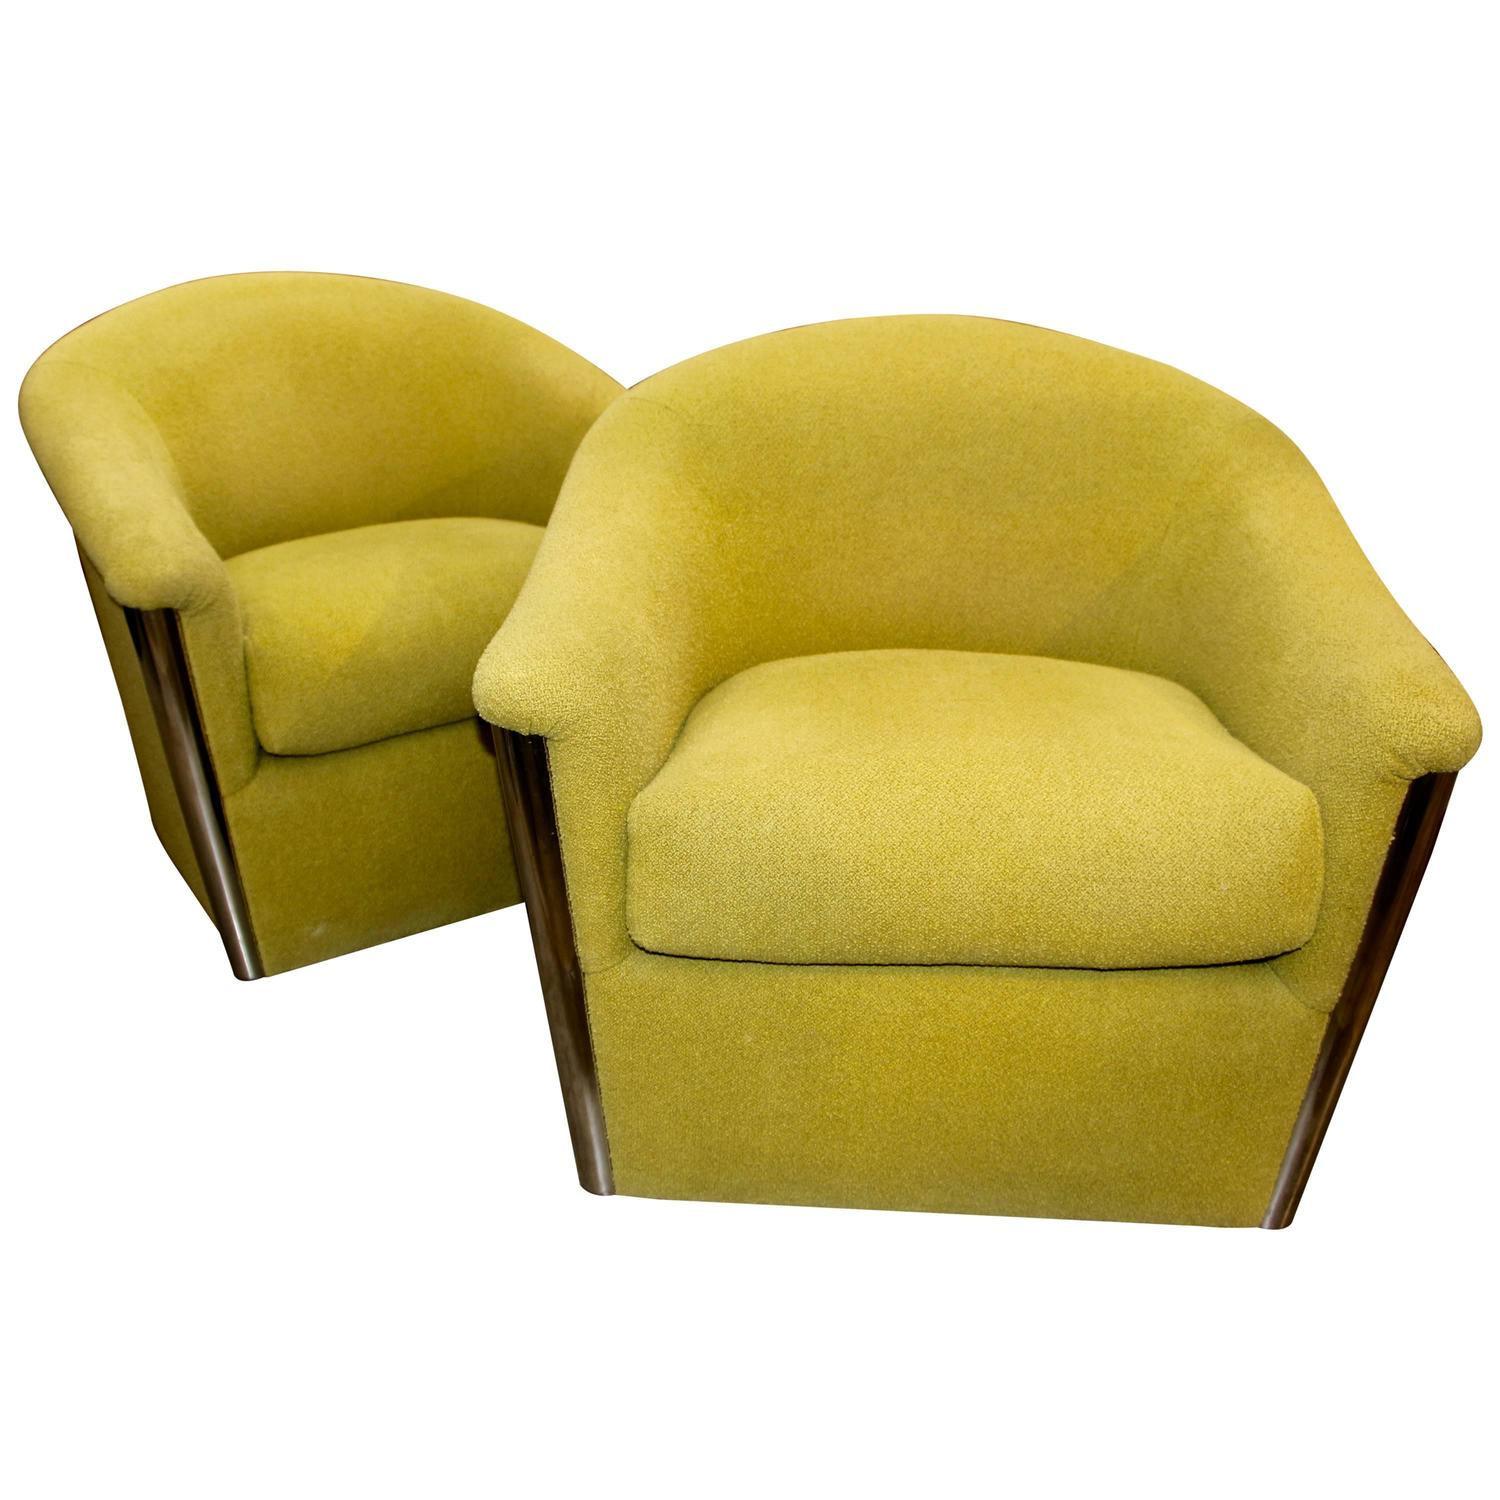 Fabulous Pair Of Chartreuse Designed By Sally Sirkin Lewis